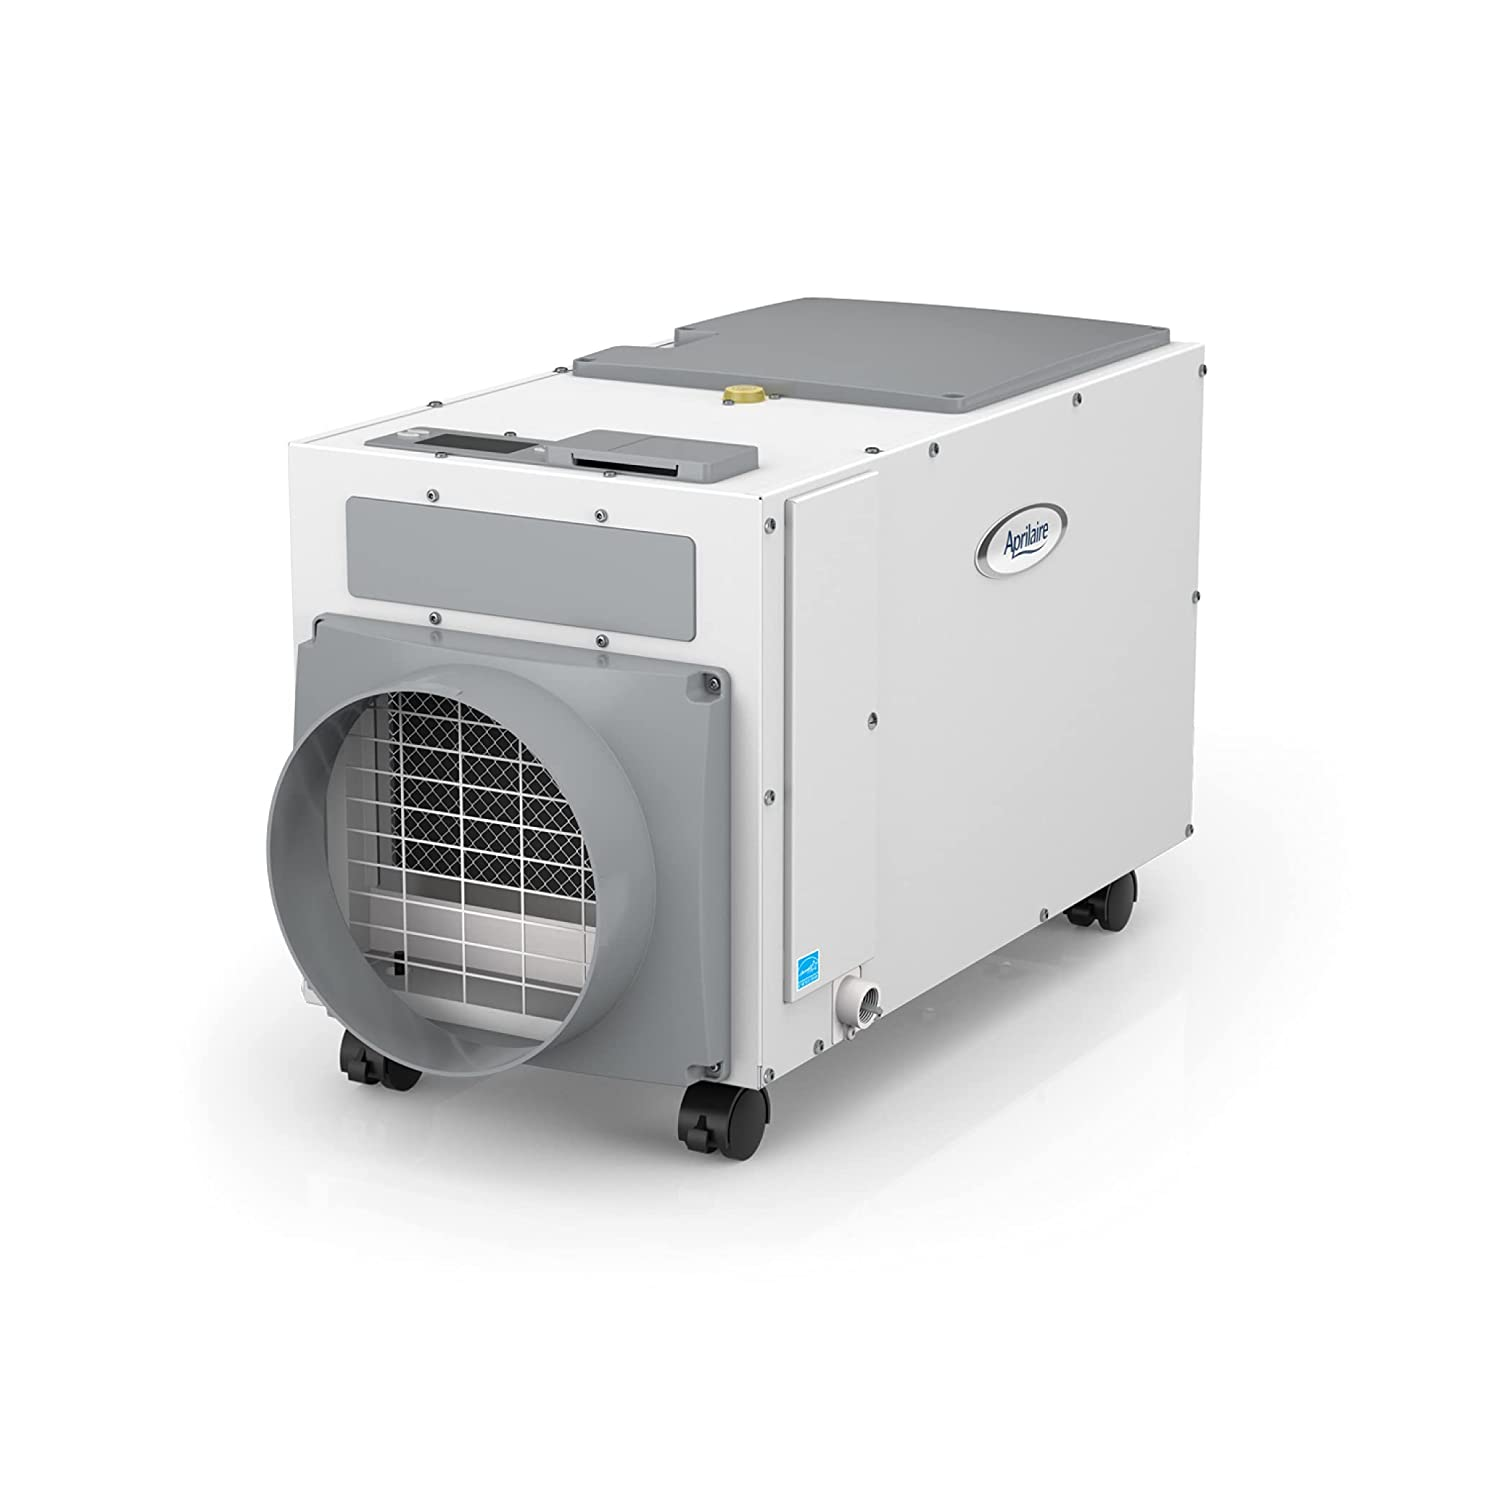 Aprilaire E100C Pro 100 Pint Dehumidifier with Casters for Crawl Spaces, Basements, Whole Homes, Commercial up to 5,500 sq. ft.